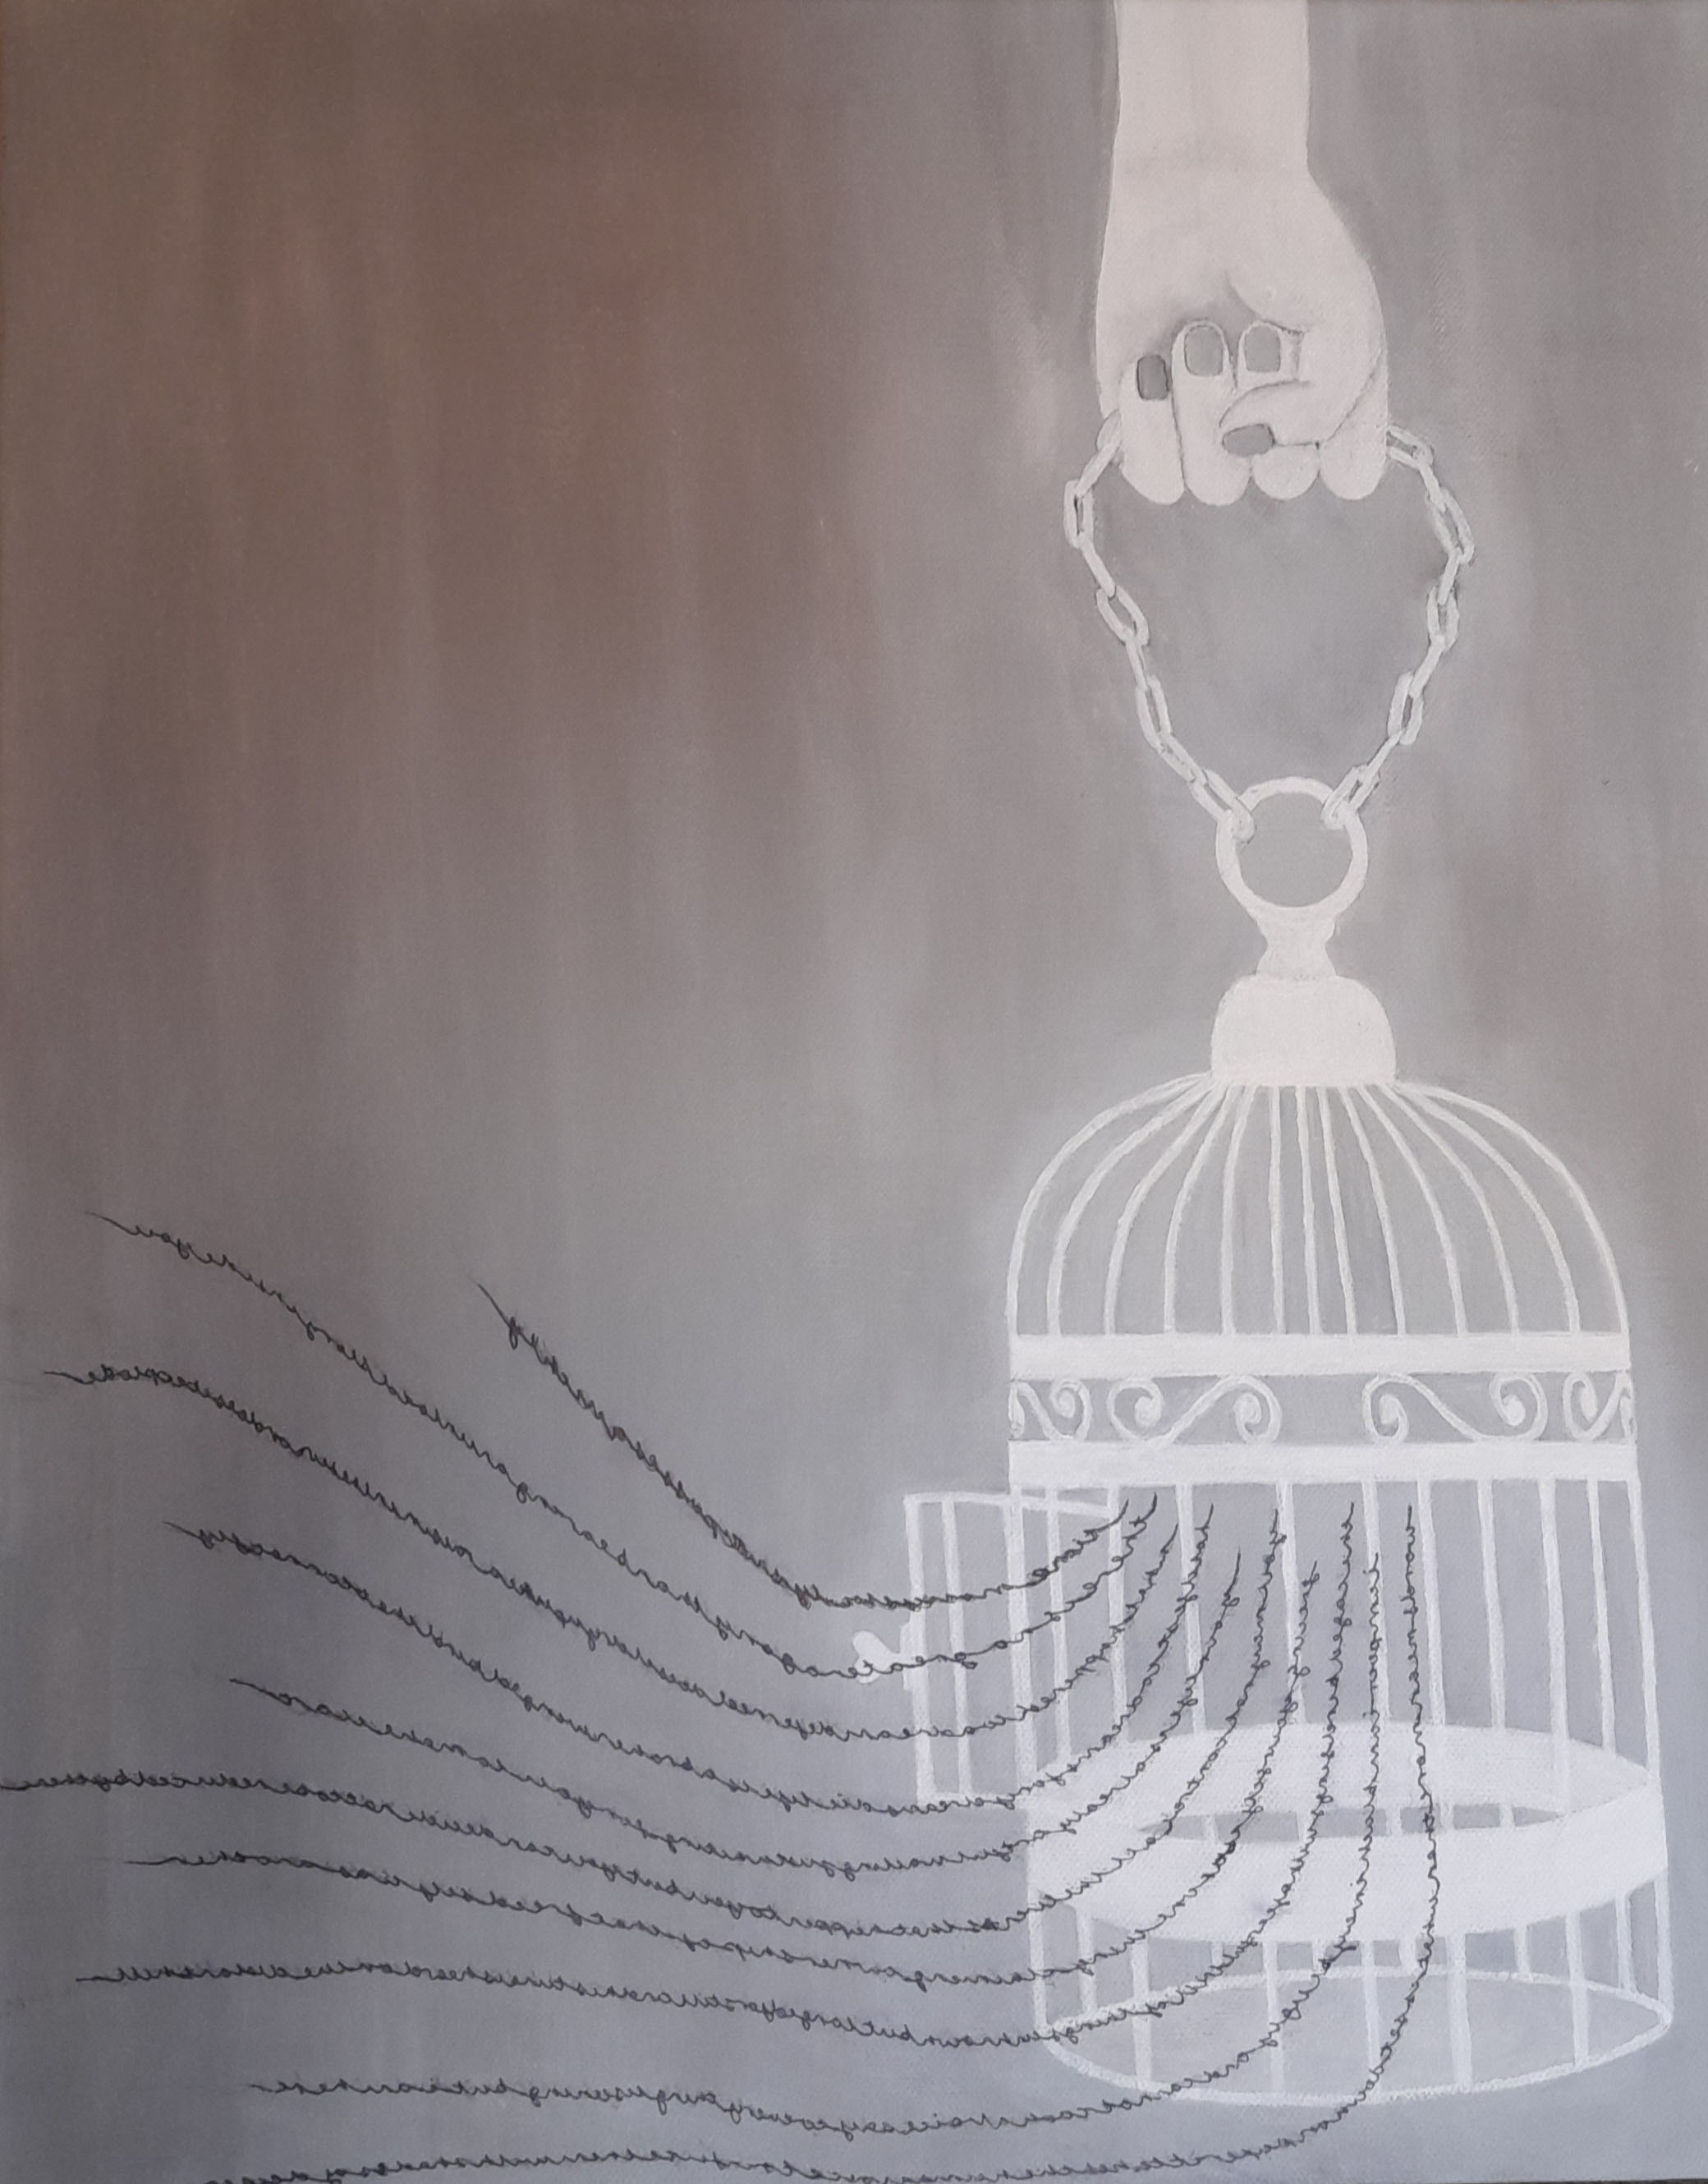 Monochrome paining of birdcage with lines of words escaping